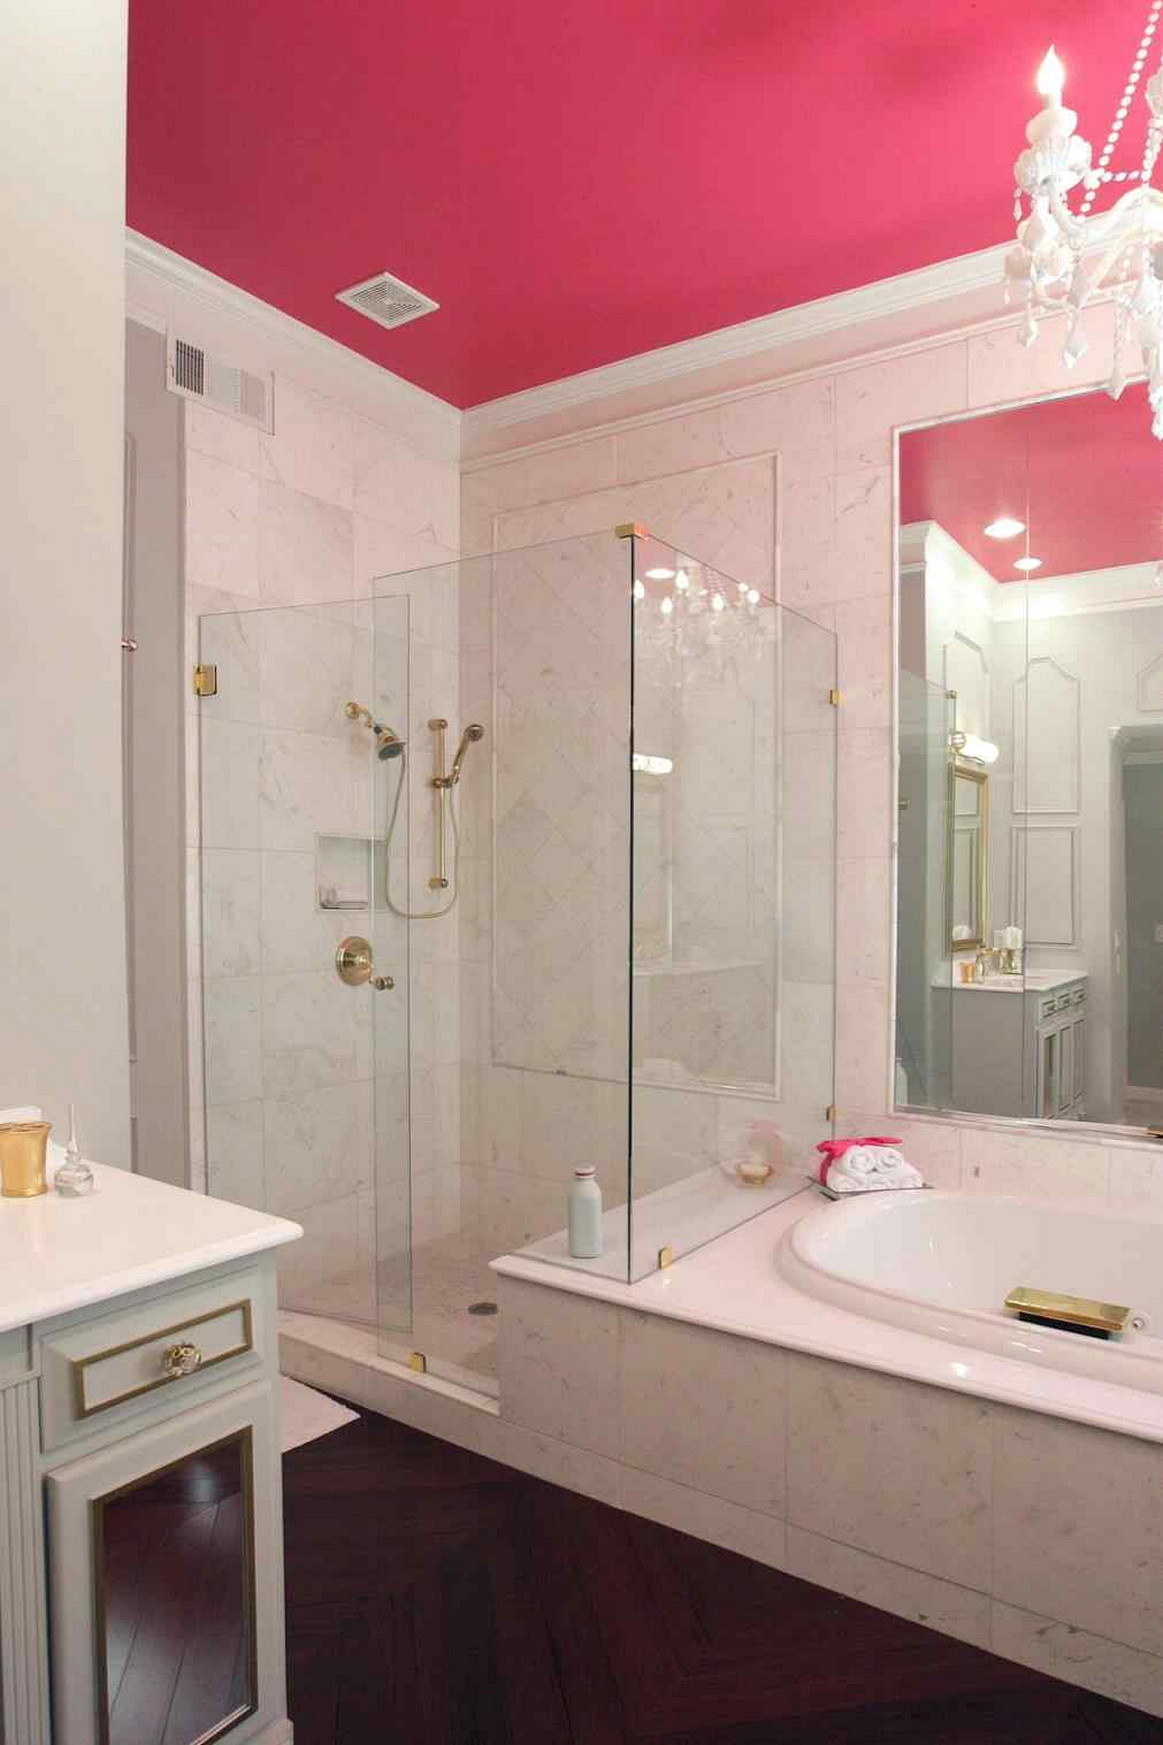 Minimalist bathroom design tips architecturein Pink bathroom ideas pictures